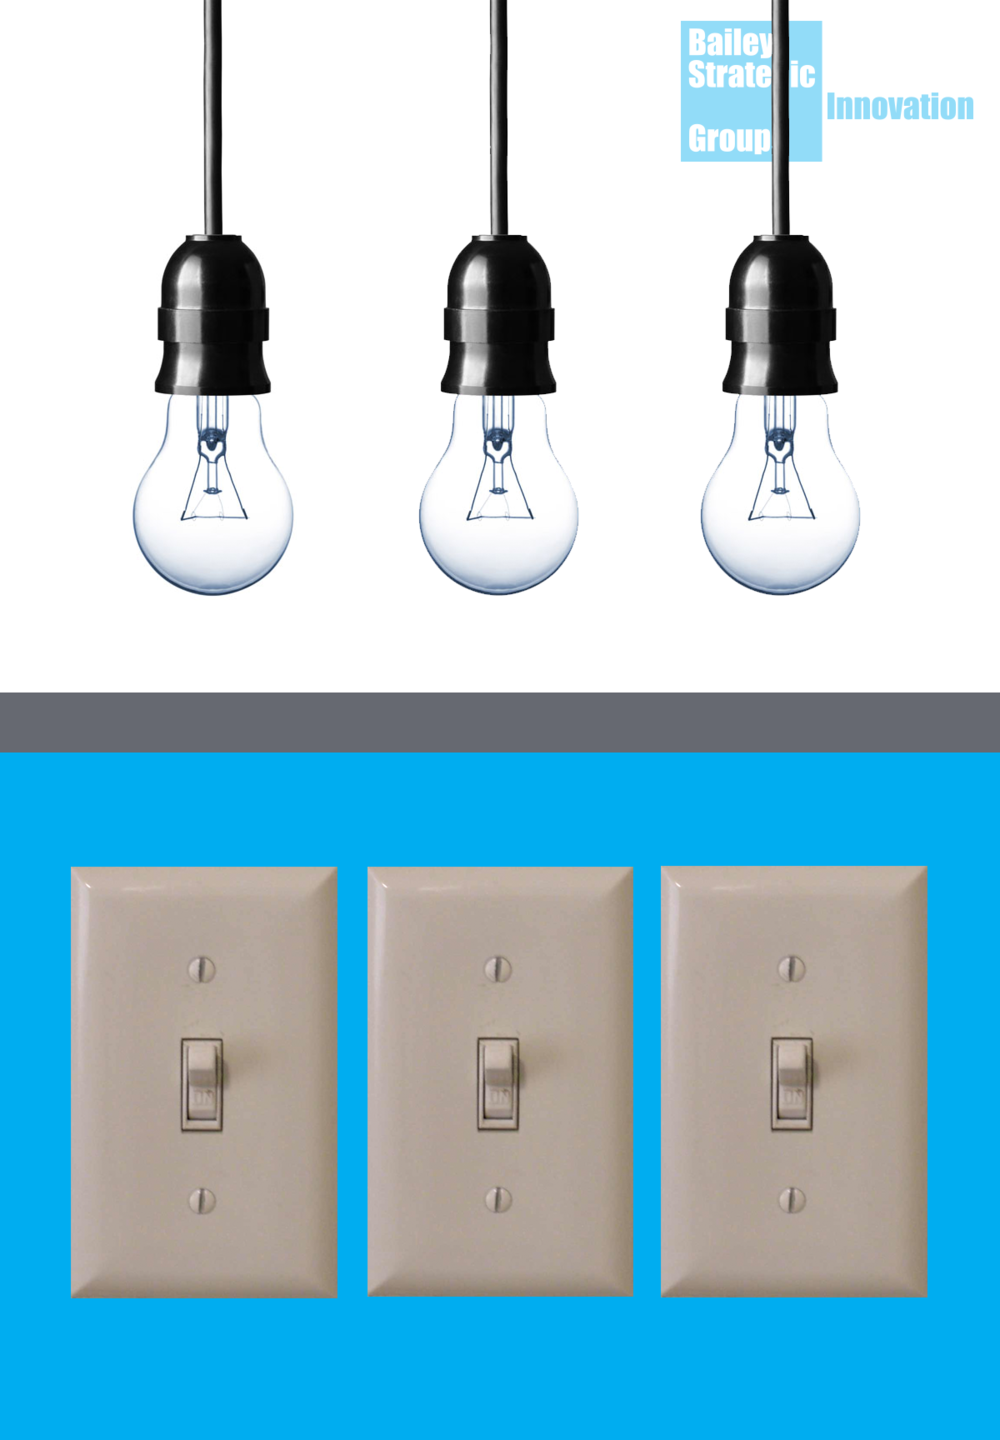 Light Switch Quiz — Bailey Strategic Innovation Group